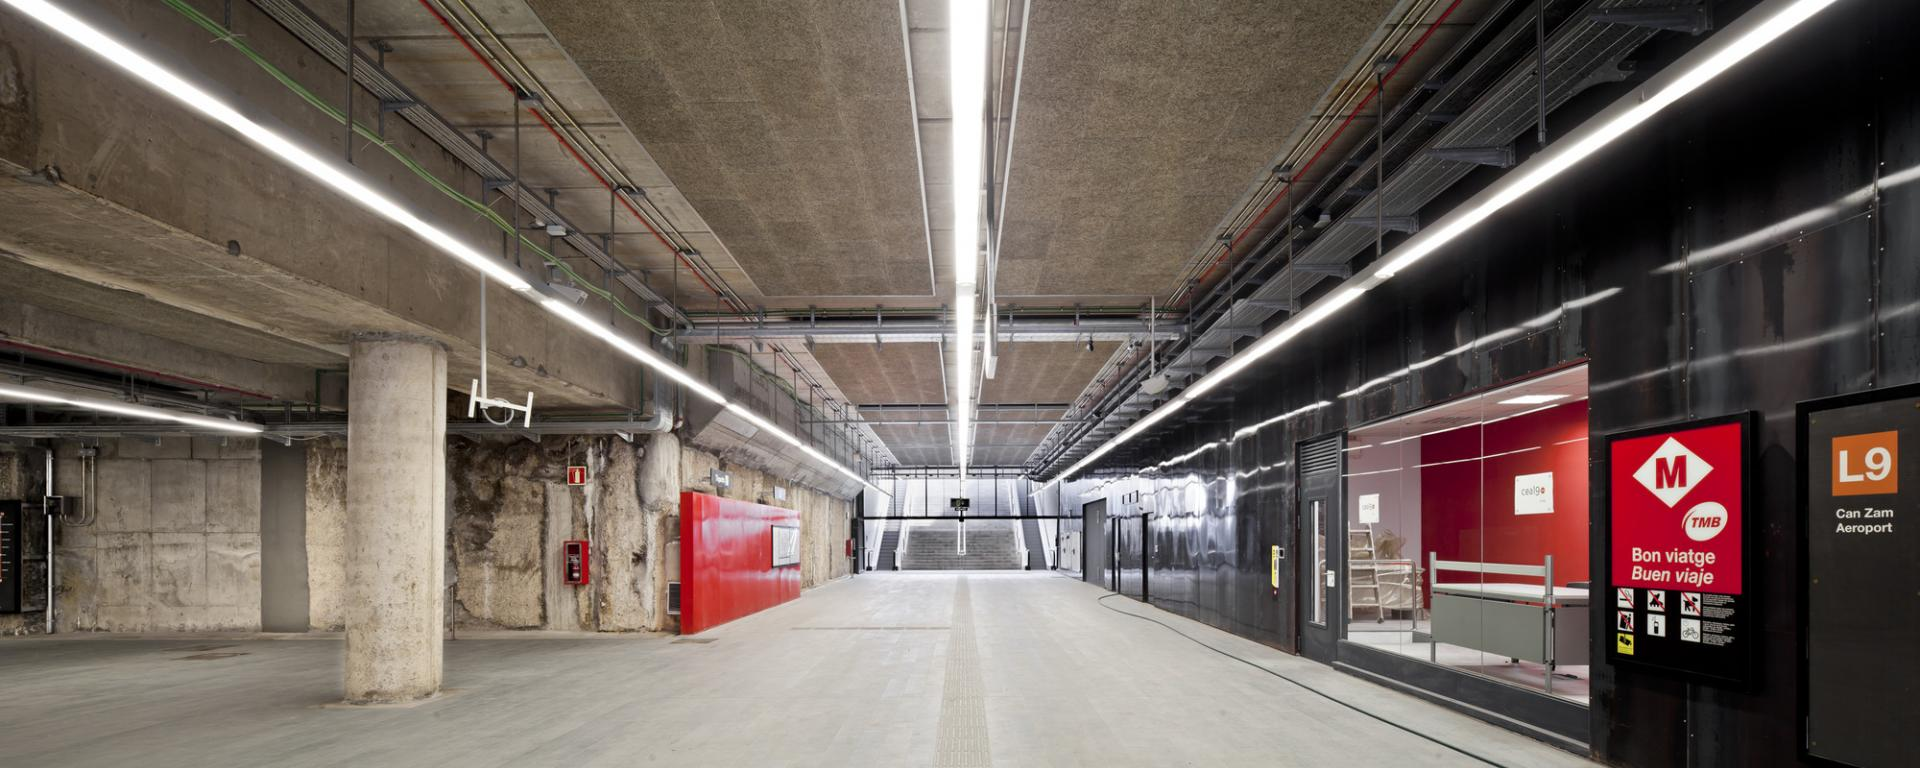 Technical Advice to Banks for Barcelona Metro Line 9